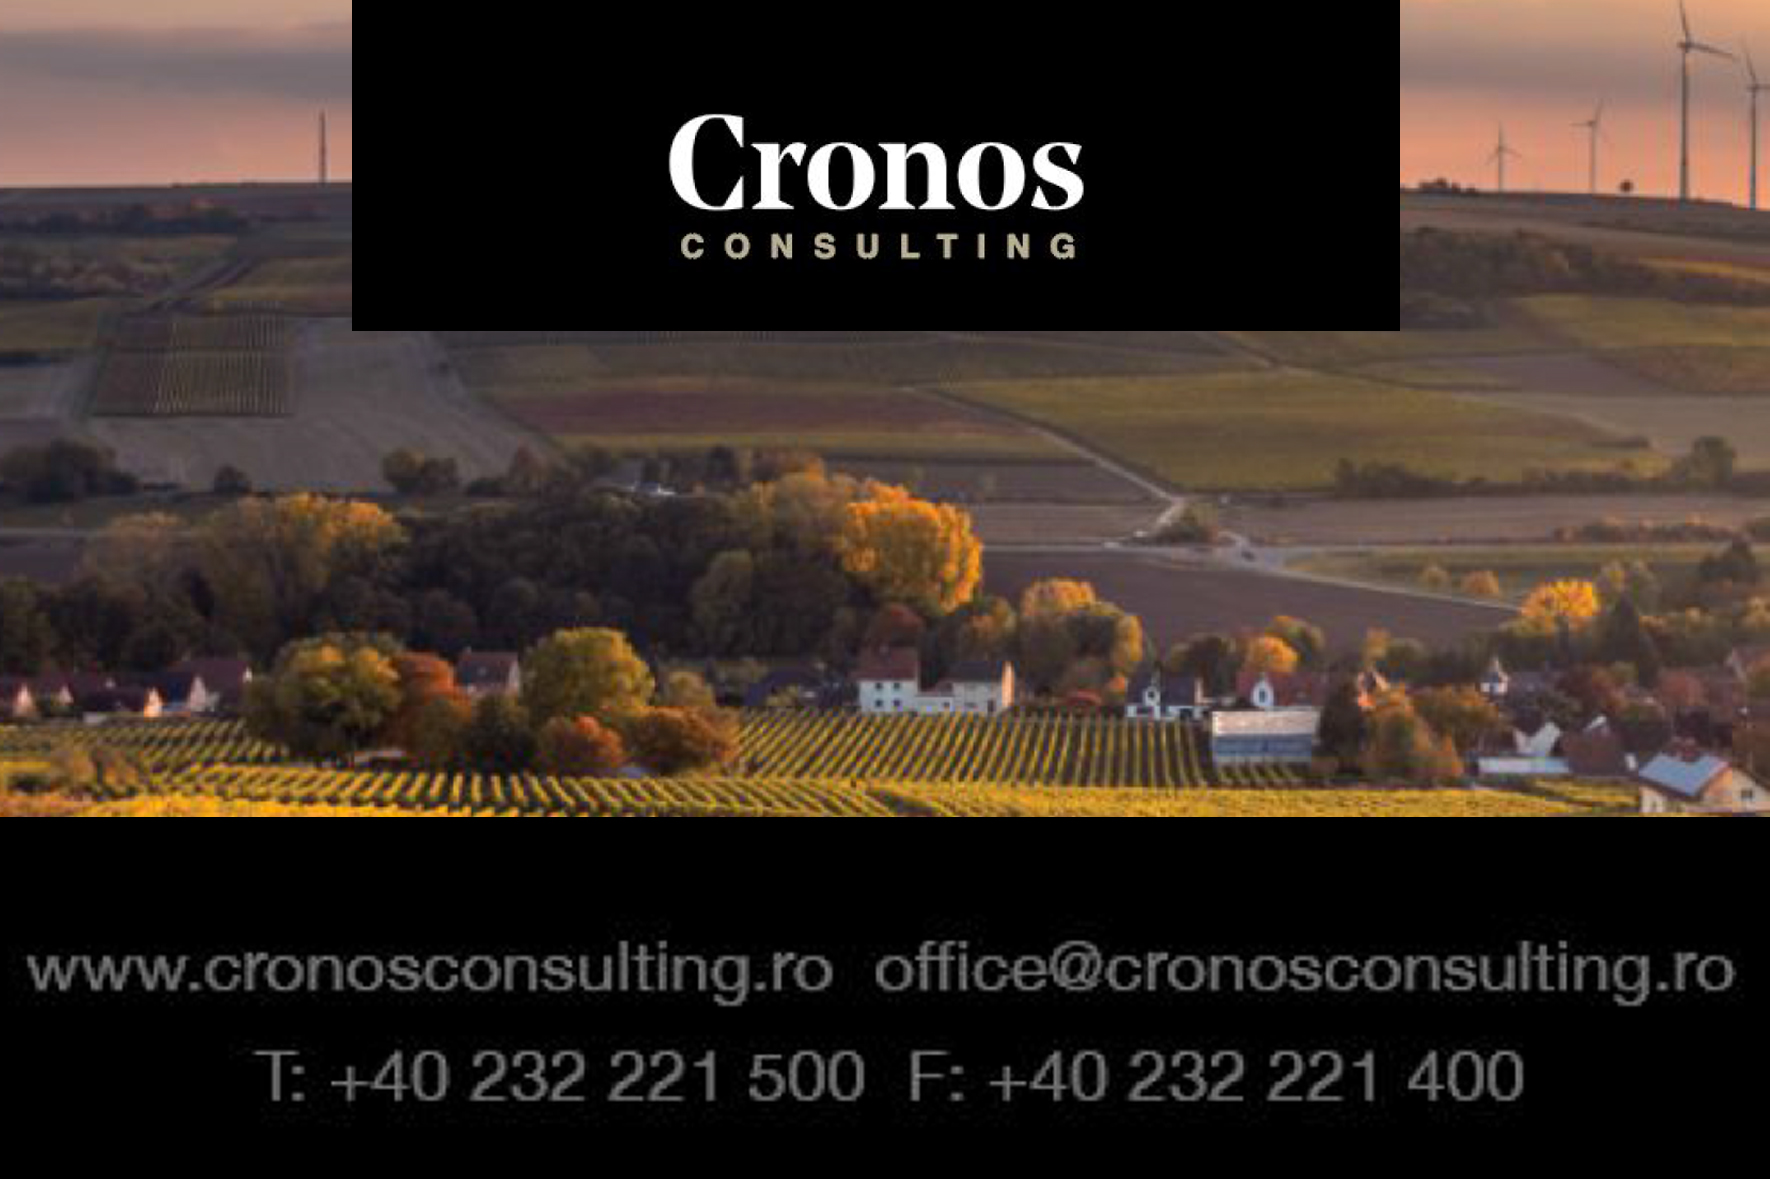 Cronos Consulting